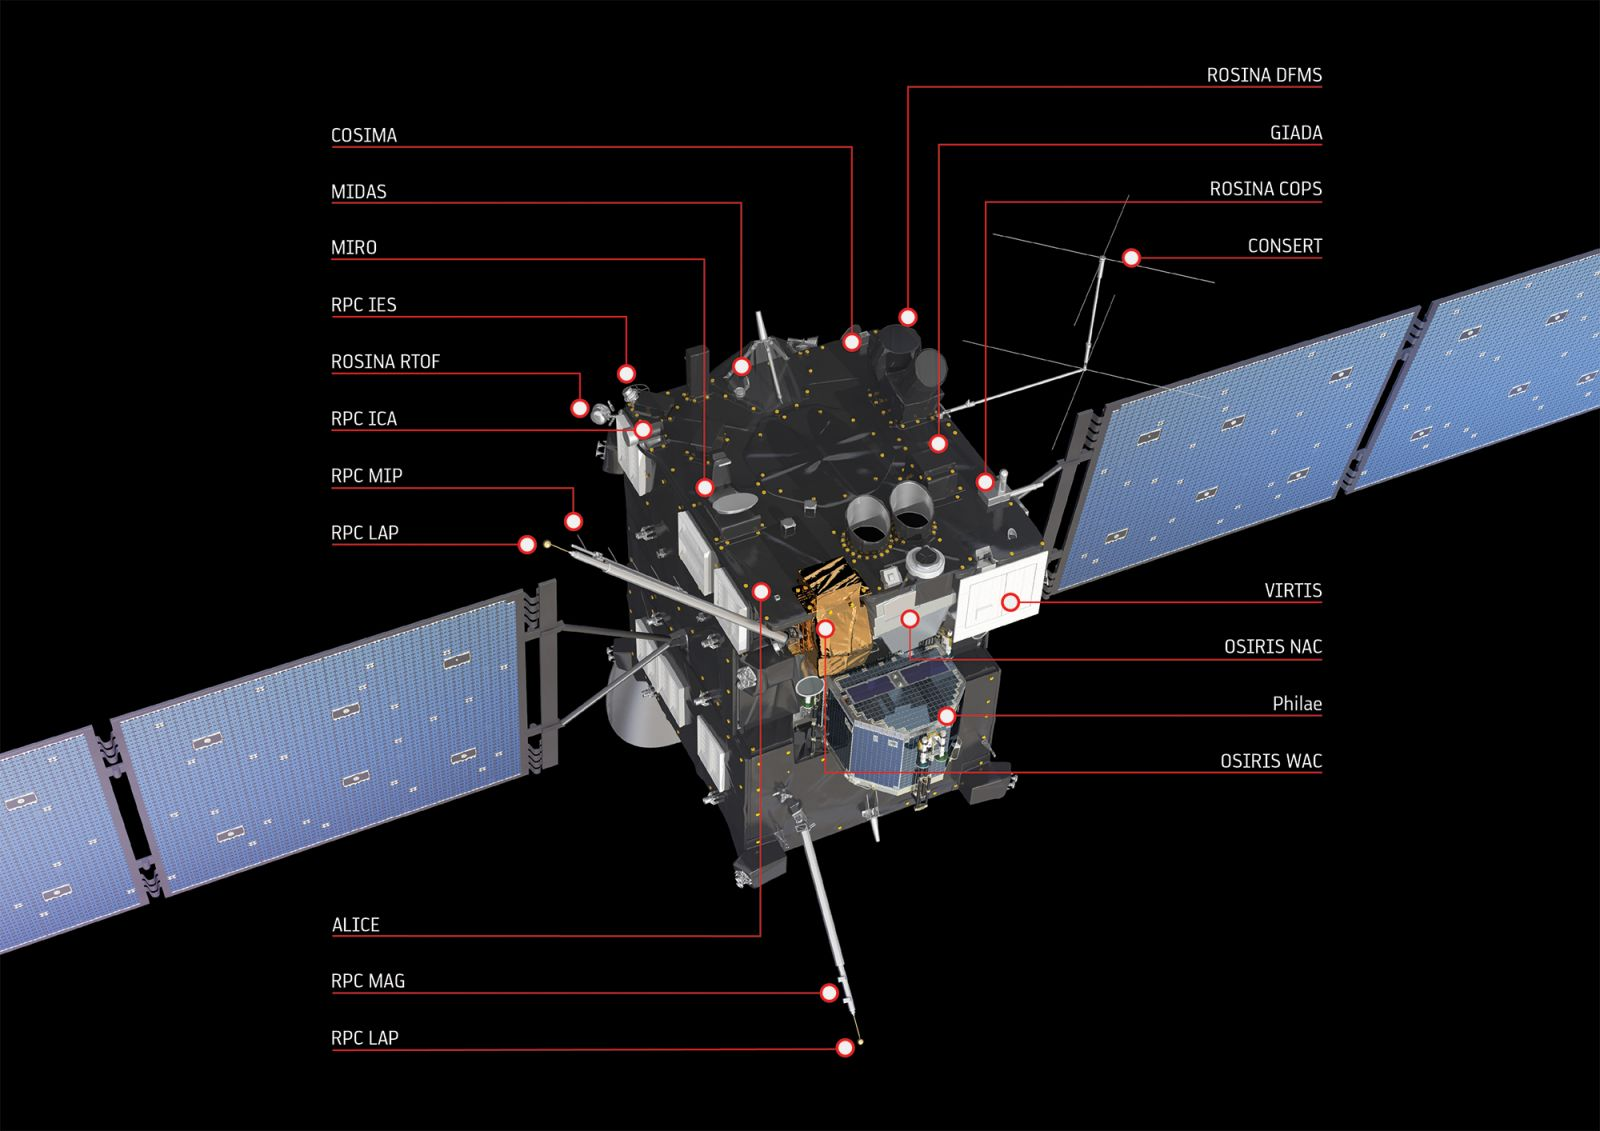 ESA's Rosetta spacecraft bristles with scientific instruments to study the physical and chemical characteristics of Comet 67P/Churyumov-Gerasimenko. European Space Agency